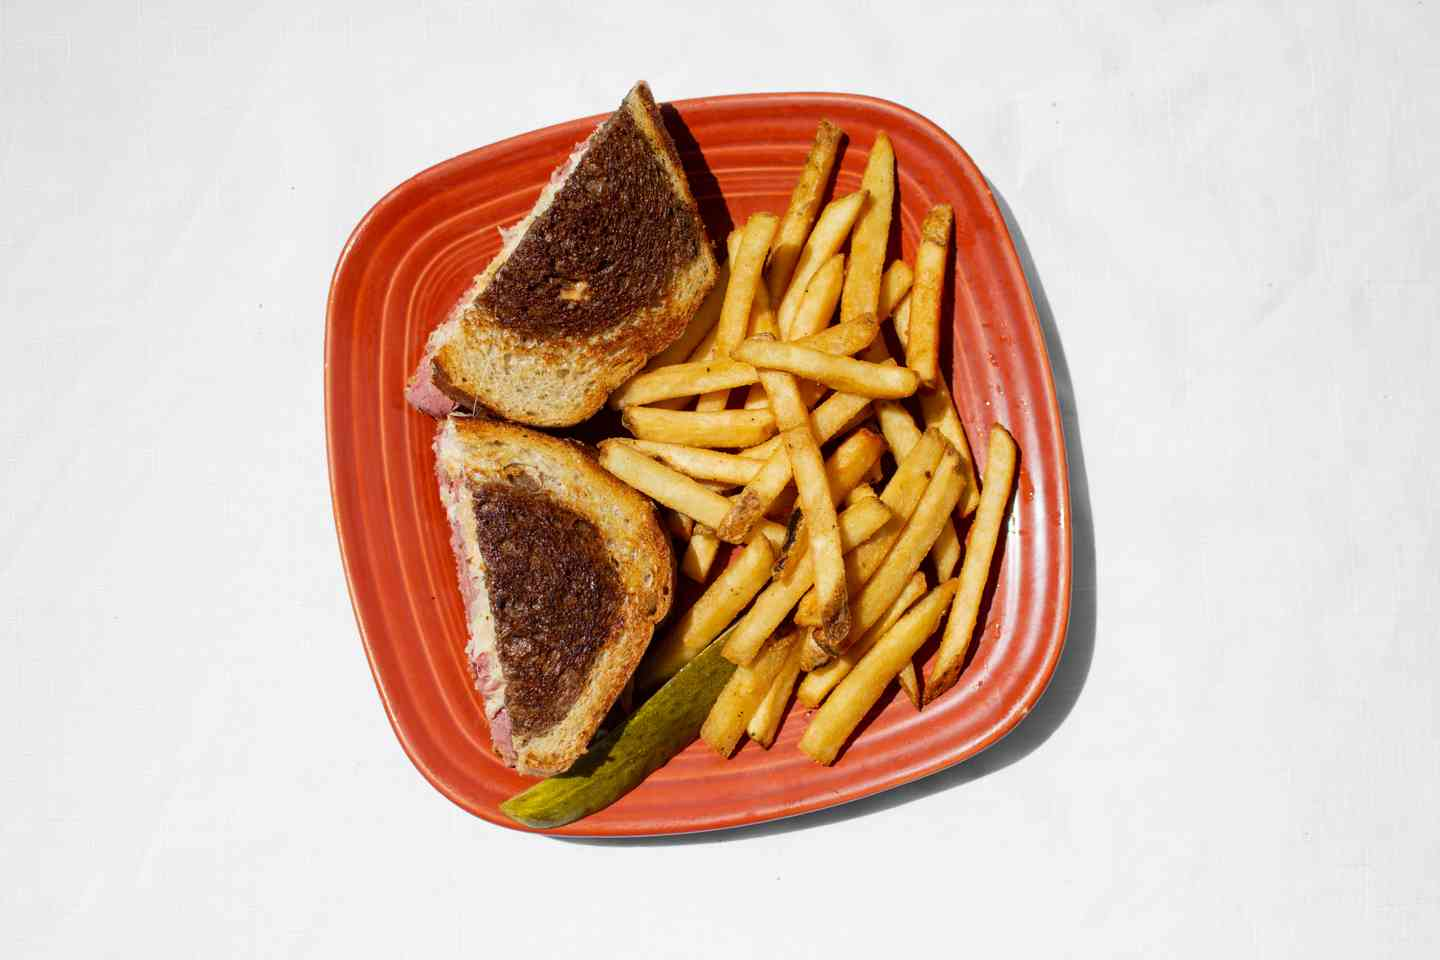 sandwhich and fries